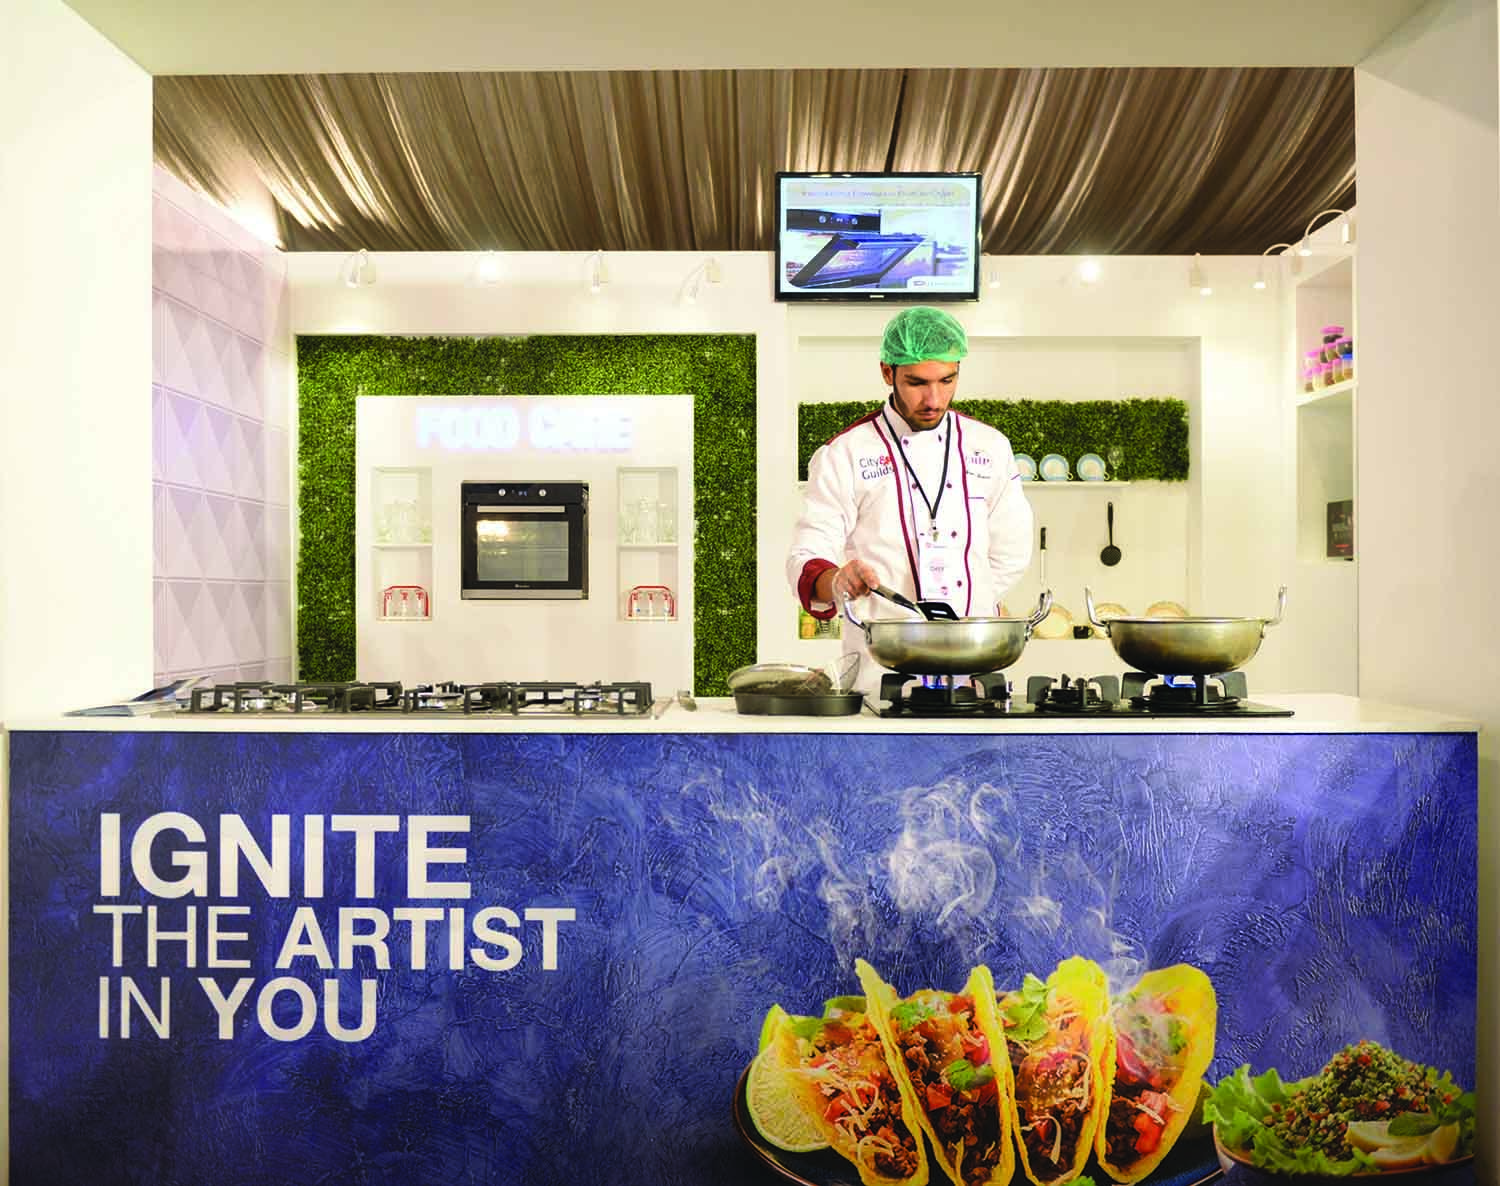 Earlier this year, Dawlance, through their activation agency, Bulls Eye DDB, organised an event in Lahore to promote their multi-purpose stoves and ovens. Founded by Shoaib Qureshy, Bulls Eye DDB was Pakistan's first specialist activation agency. Since activation events create more opportunities for personalised interactions and engagement with their target audience, an increasing number of brands have upped their marketing budgets for activation. According to the Aurora Fact File, in the FY 2016-17, ad spend on activation increased by 25%. (photo: Syed Murtaza Ali/ Dawn White Star)